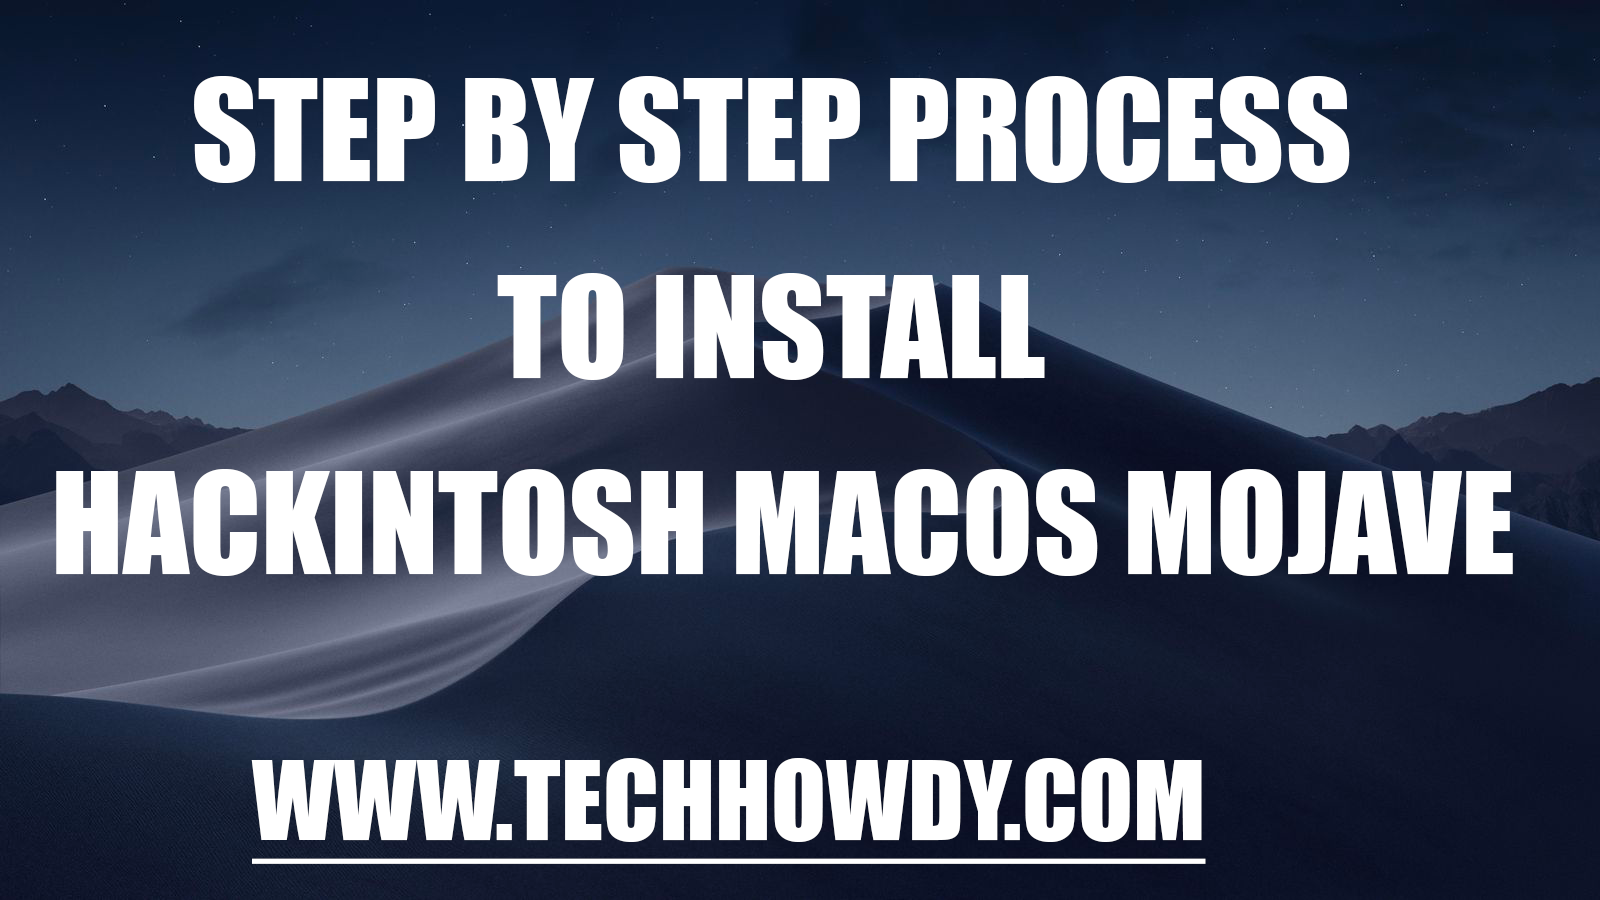 Step By Step Process To Install Hackintosh macOS Mojave - TechHowdy